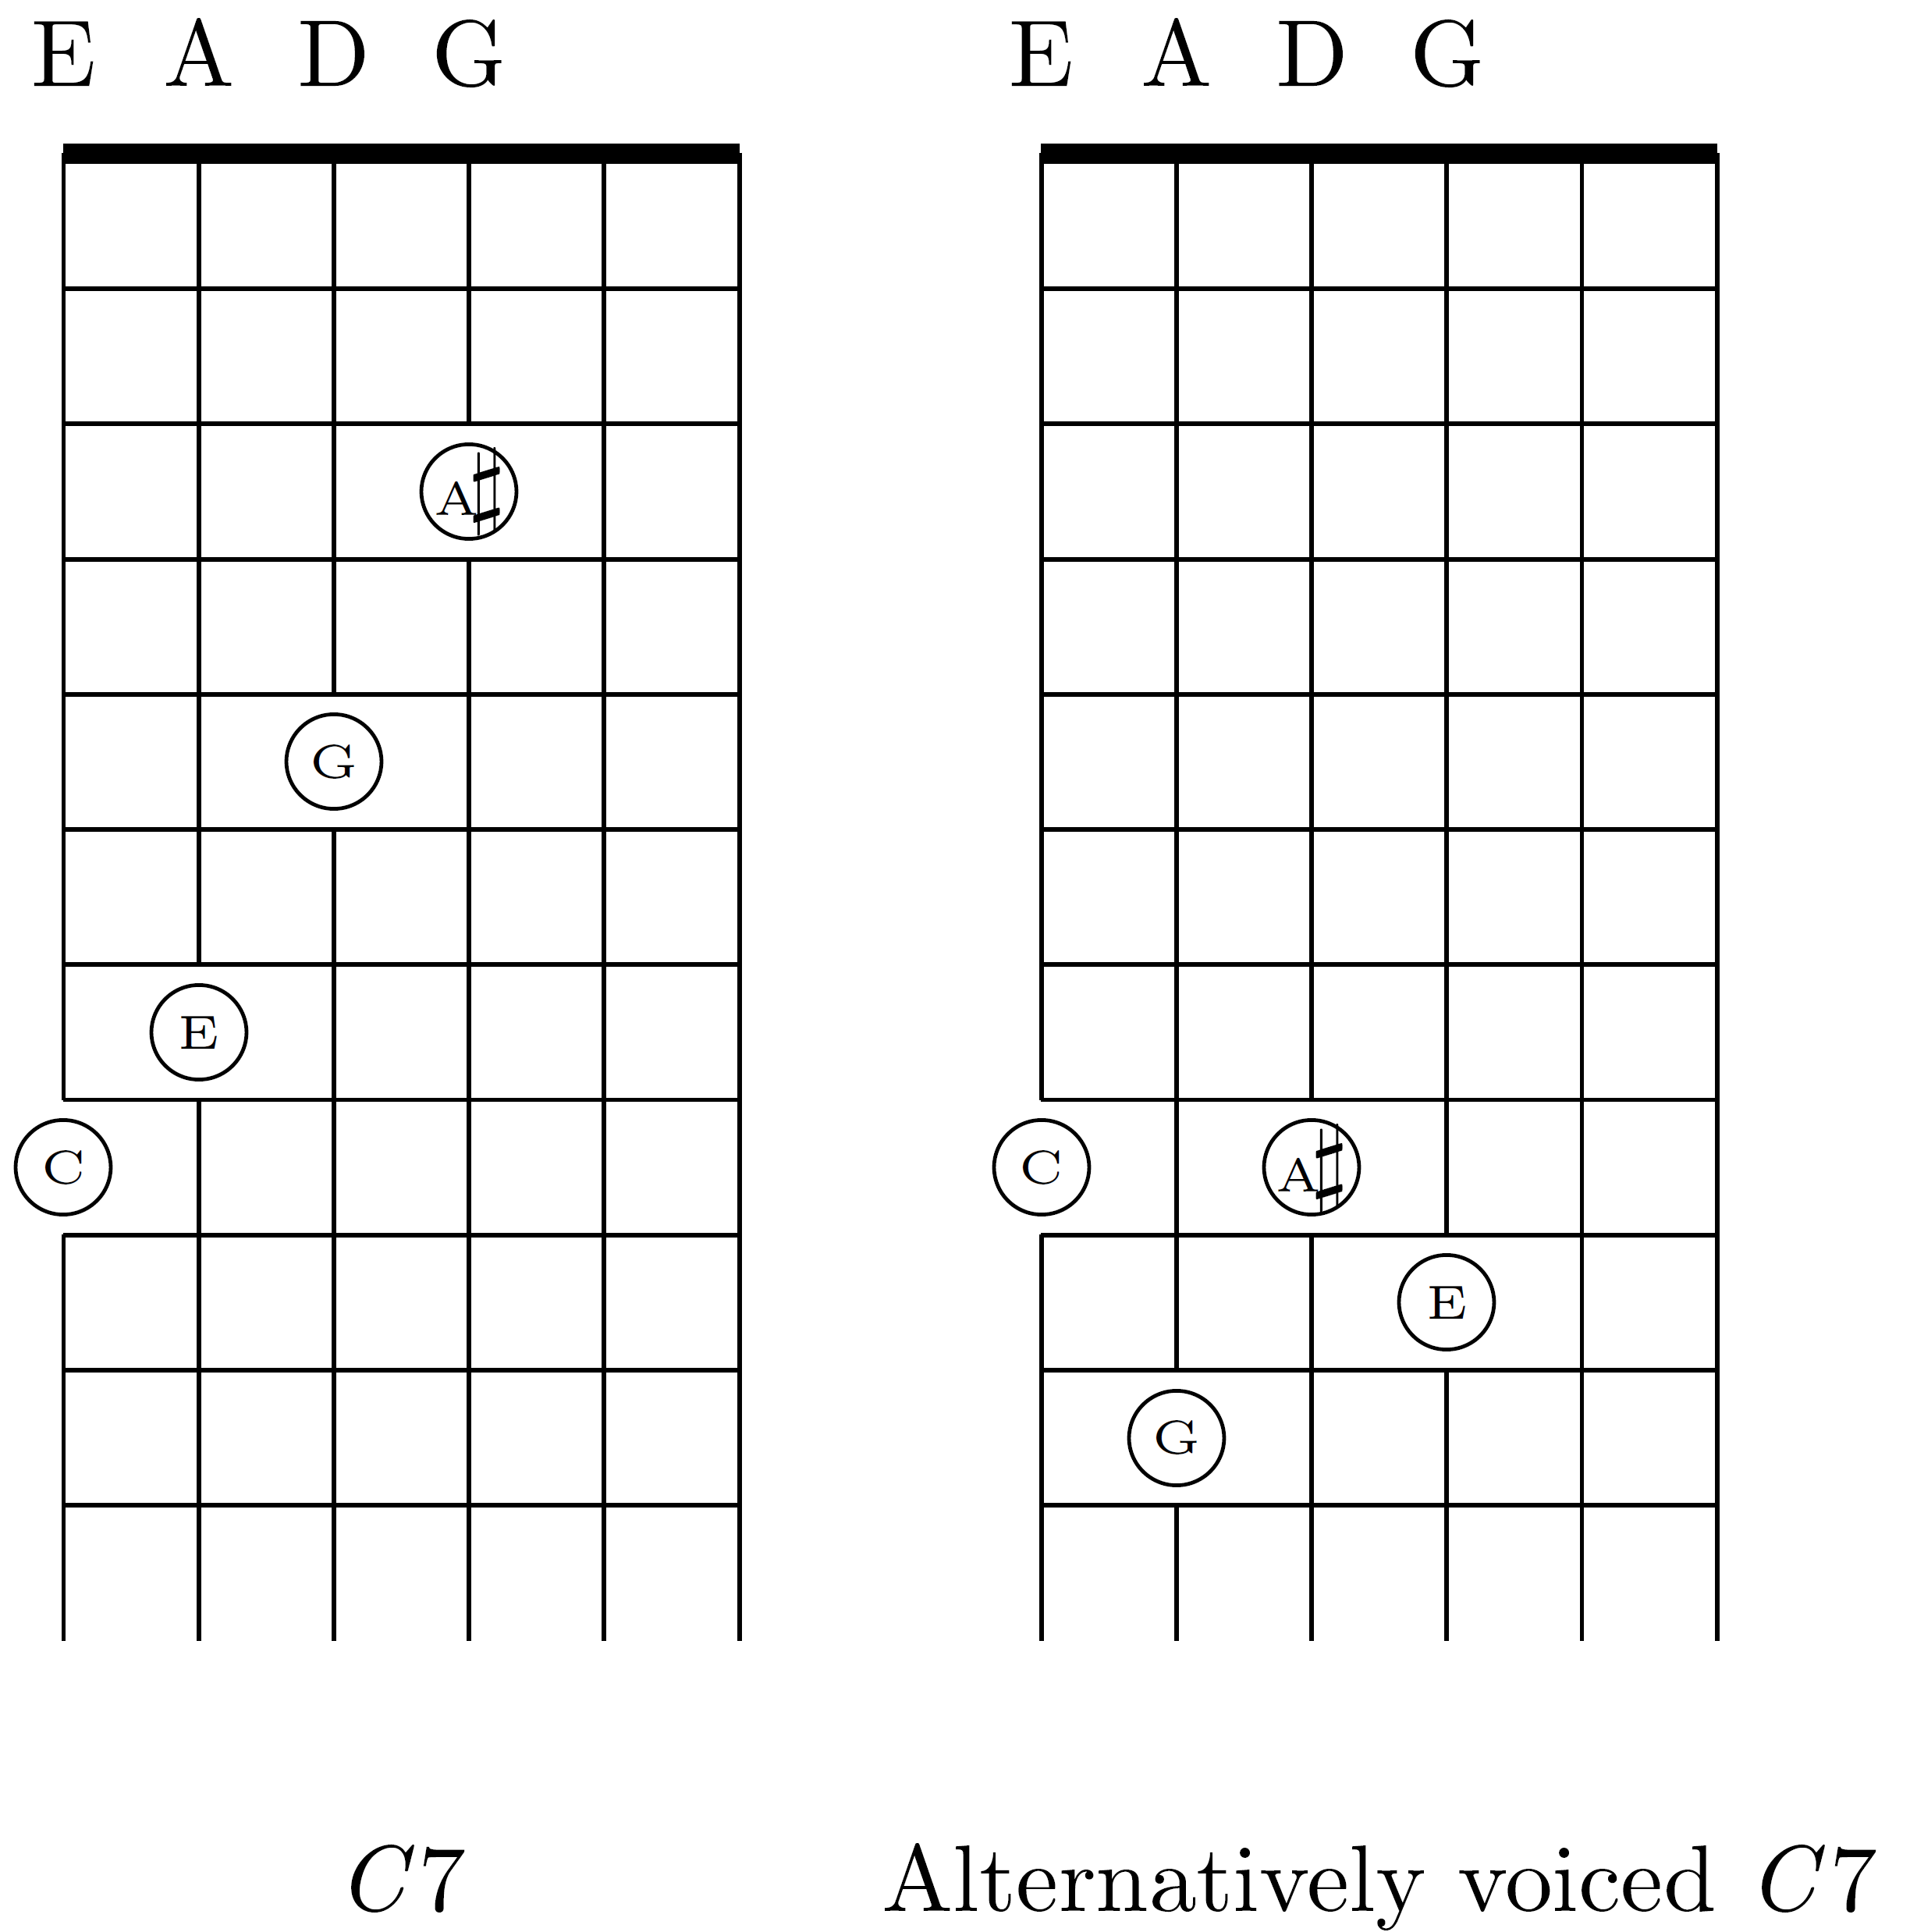 Filec7 Chord And Alternative Voicing For Eadg Standard And All